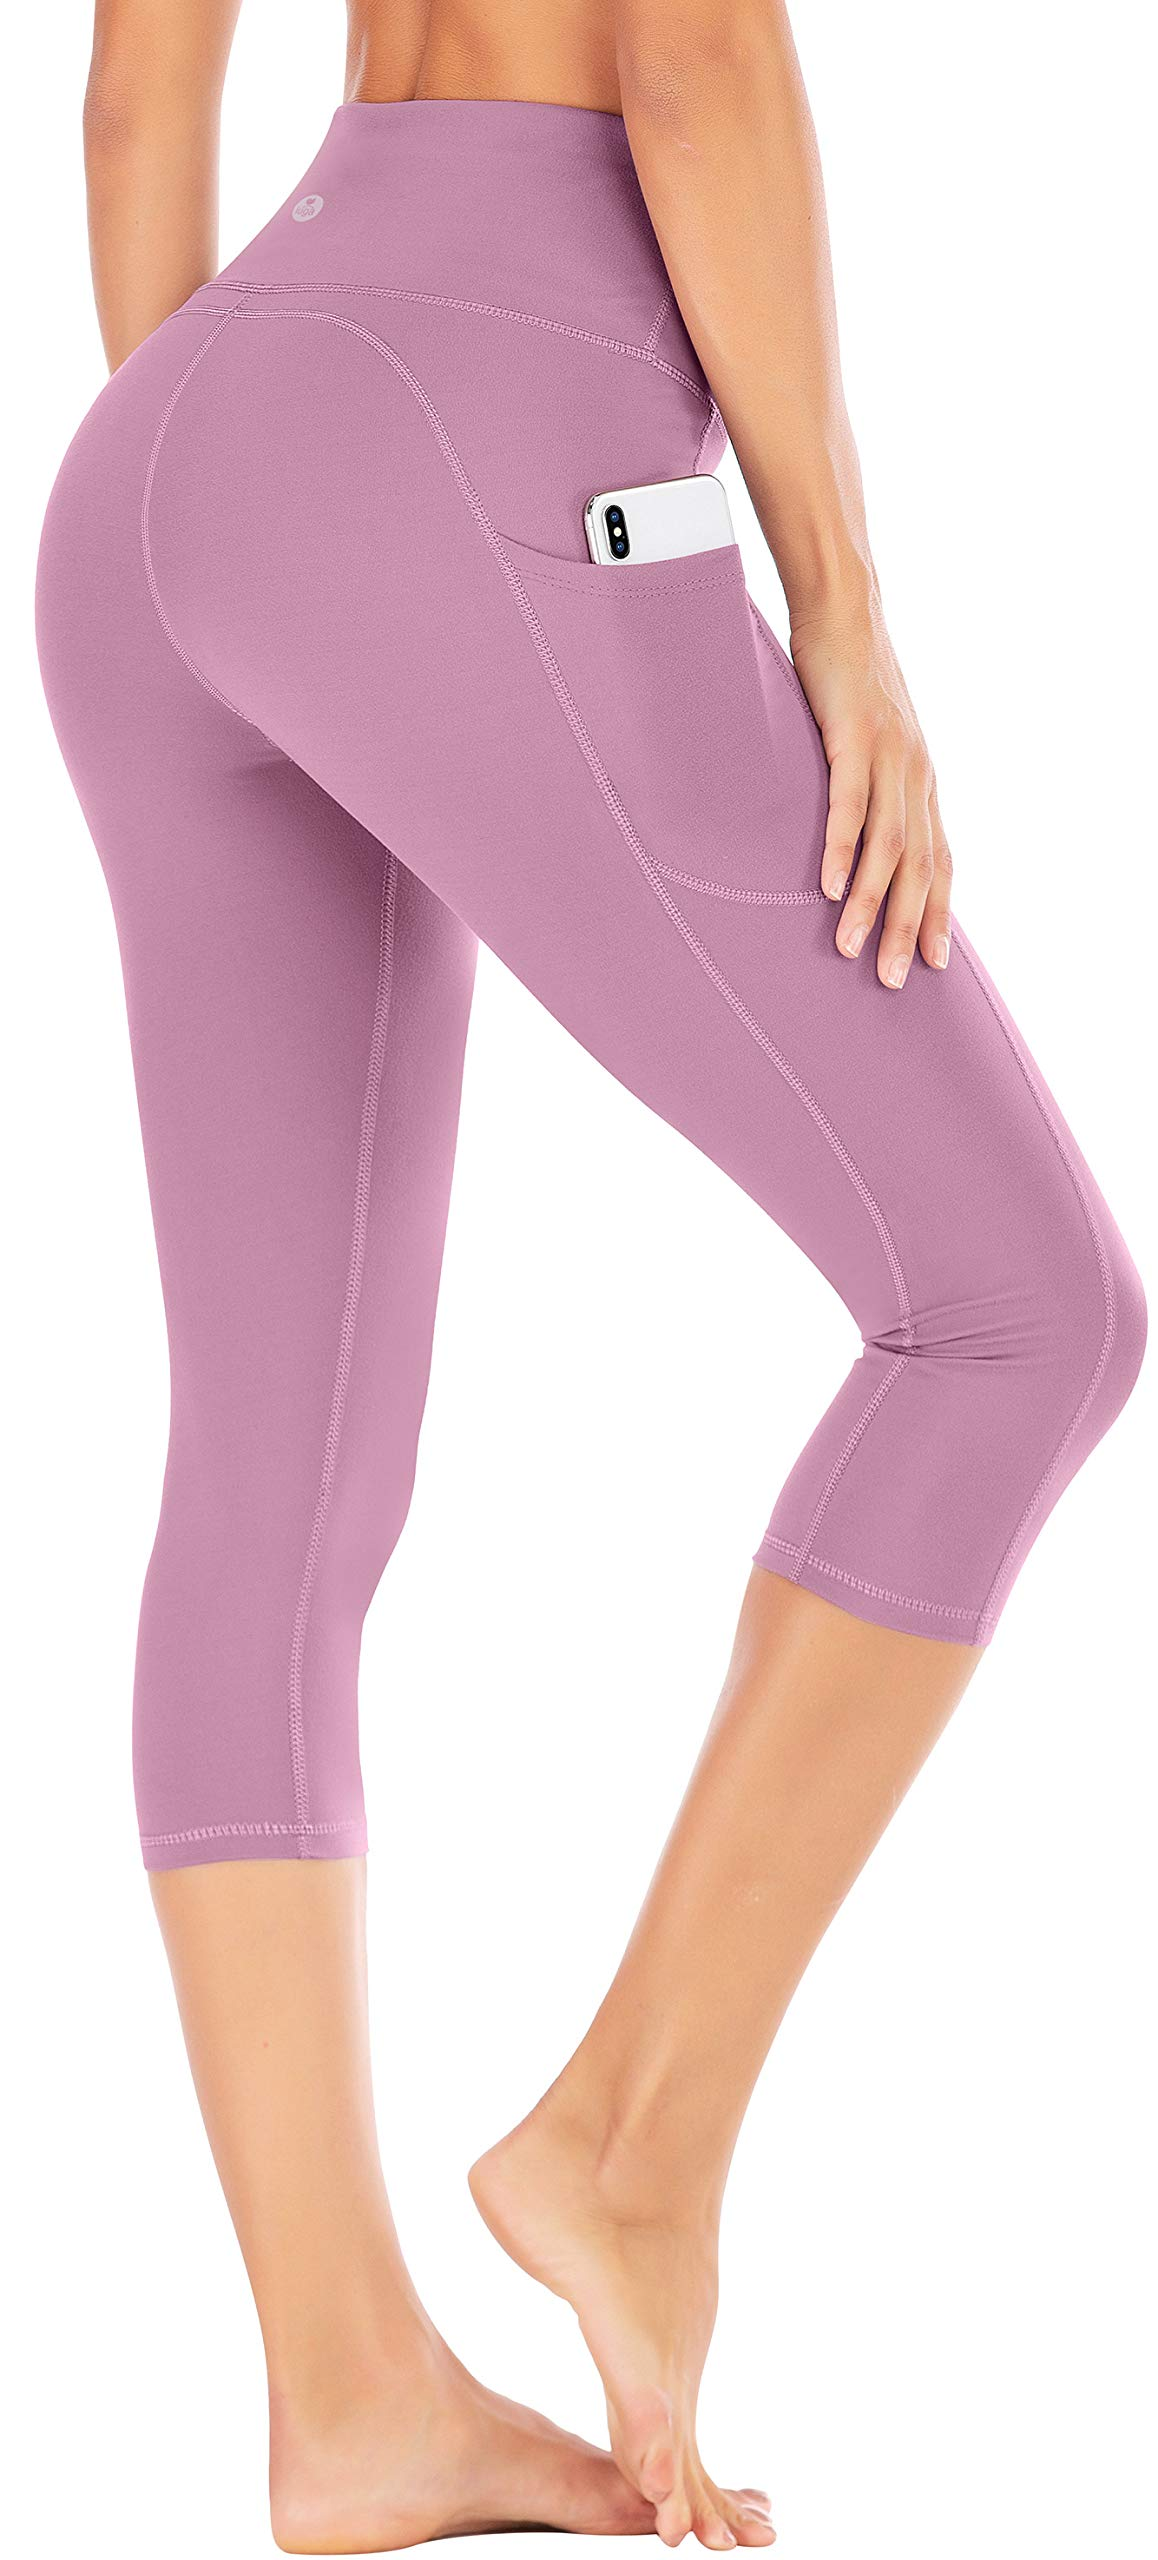 IUGA High Waist Yoga Pants with Pockets, Tummy Control Yoga Capris for Women, 4 Way Stretch Capri Leggings with Pockets(Begonia Pink, XL) by IUGA